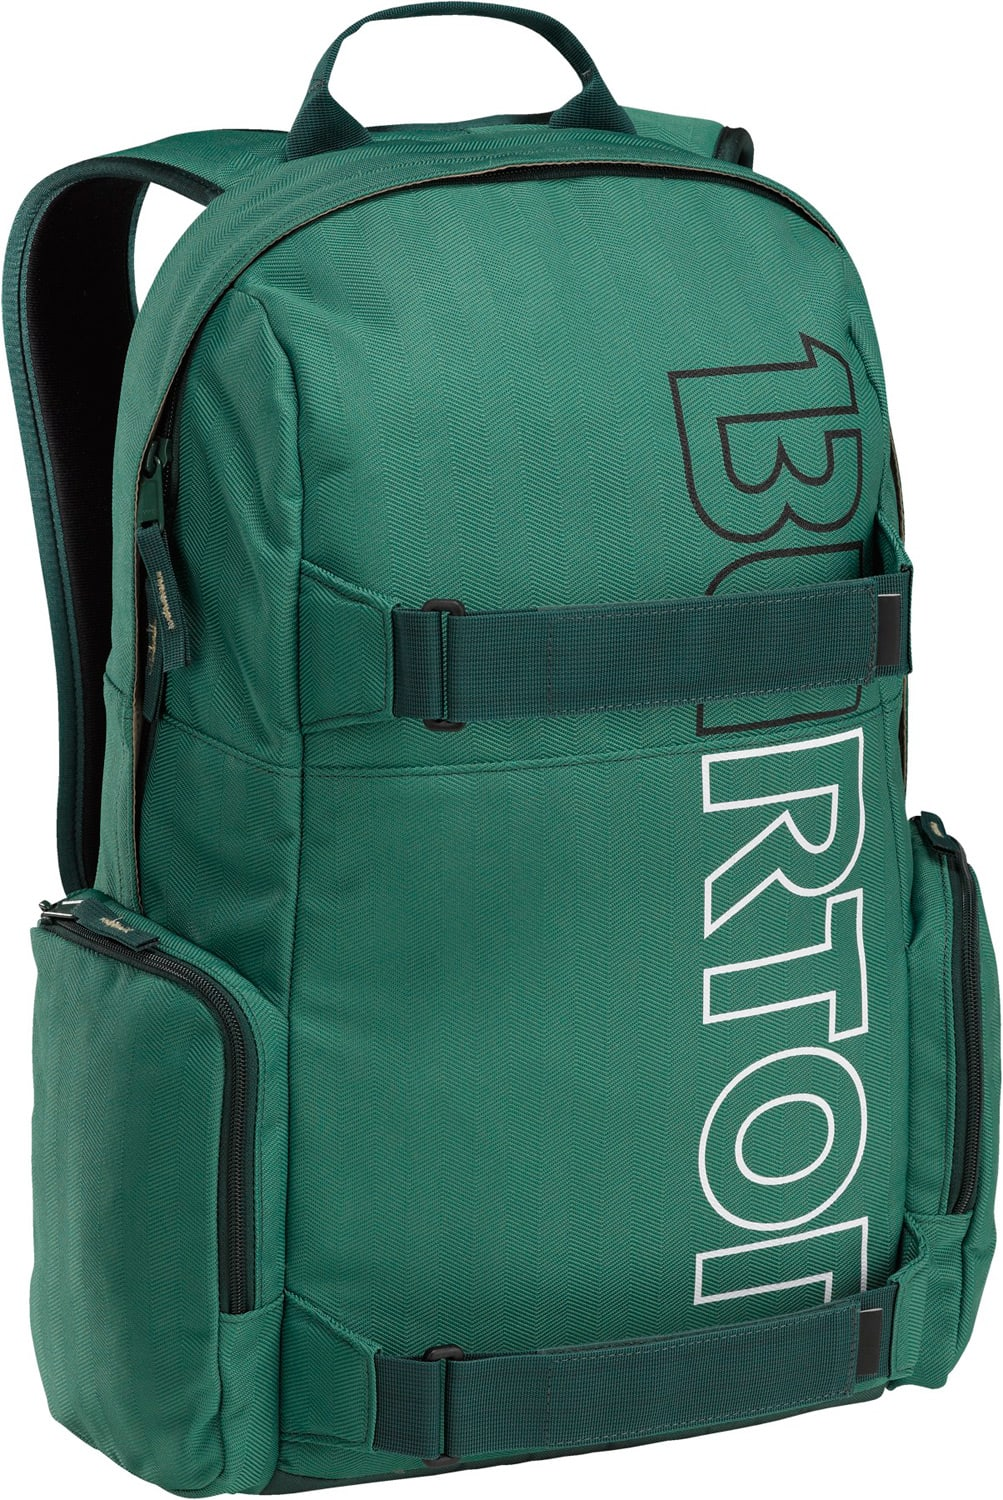 Burton Emphasis Backpack Cricket Herringbone